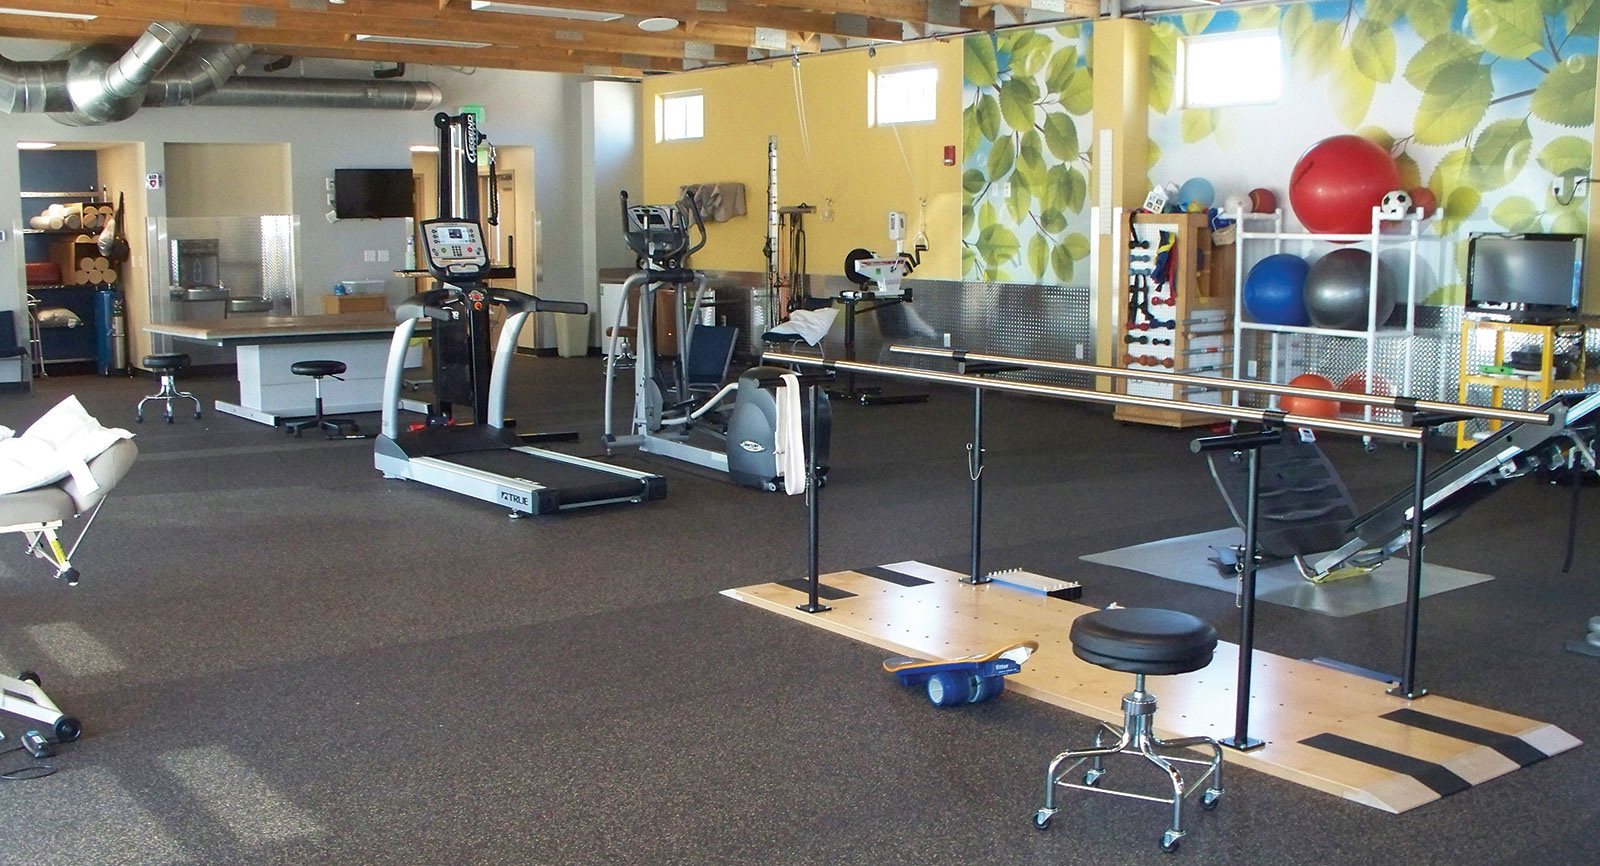 Prowers Medical Center Rehabilitation Center and Gym floor with a variety of equipment for patients to use